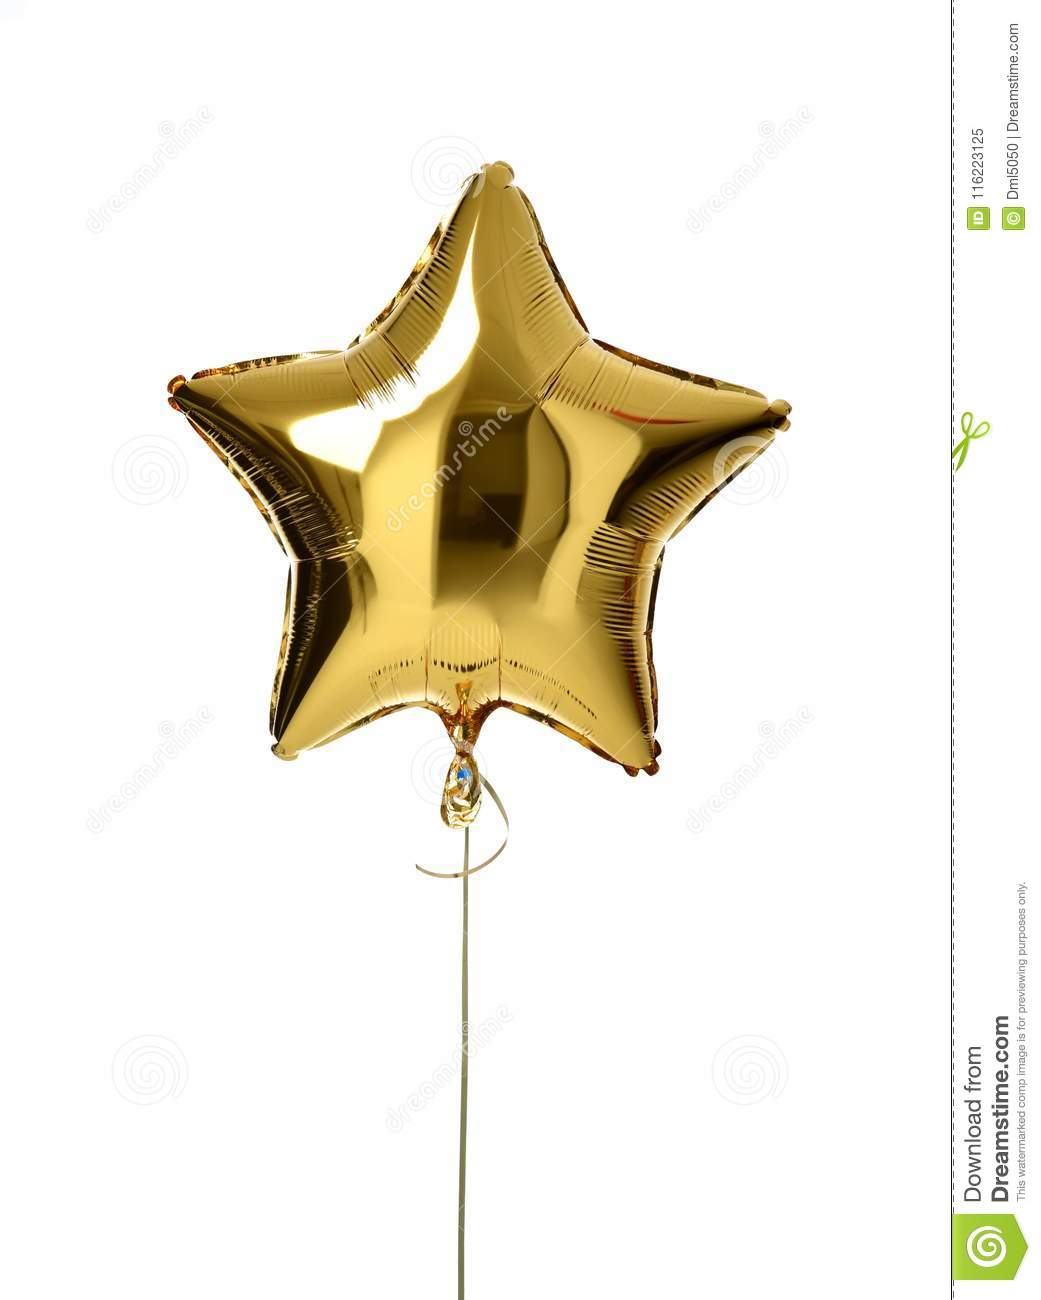 Single big gold star balloon object for birthday party